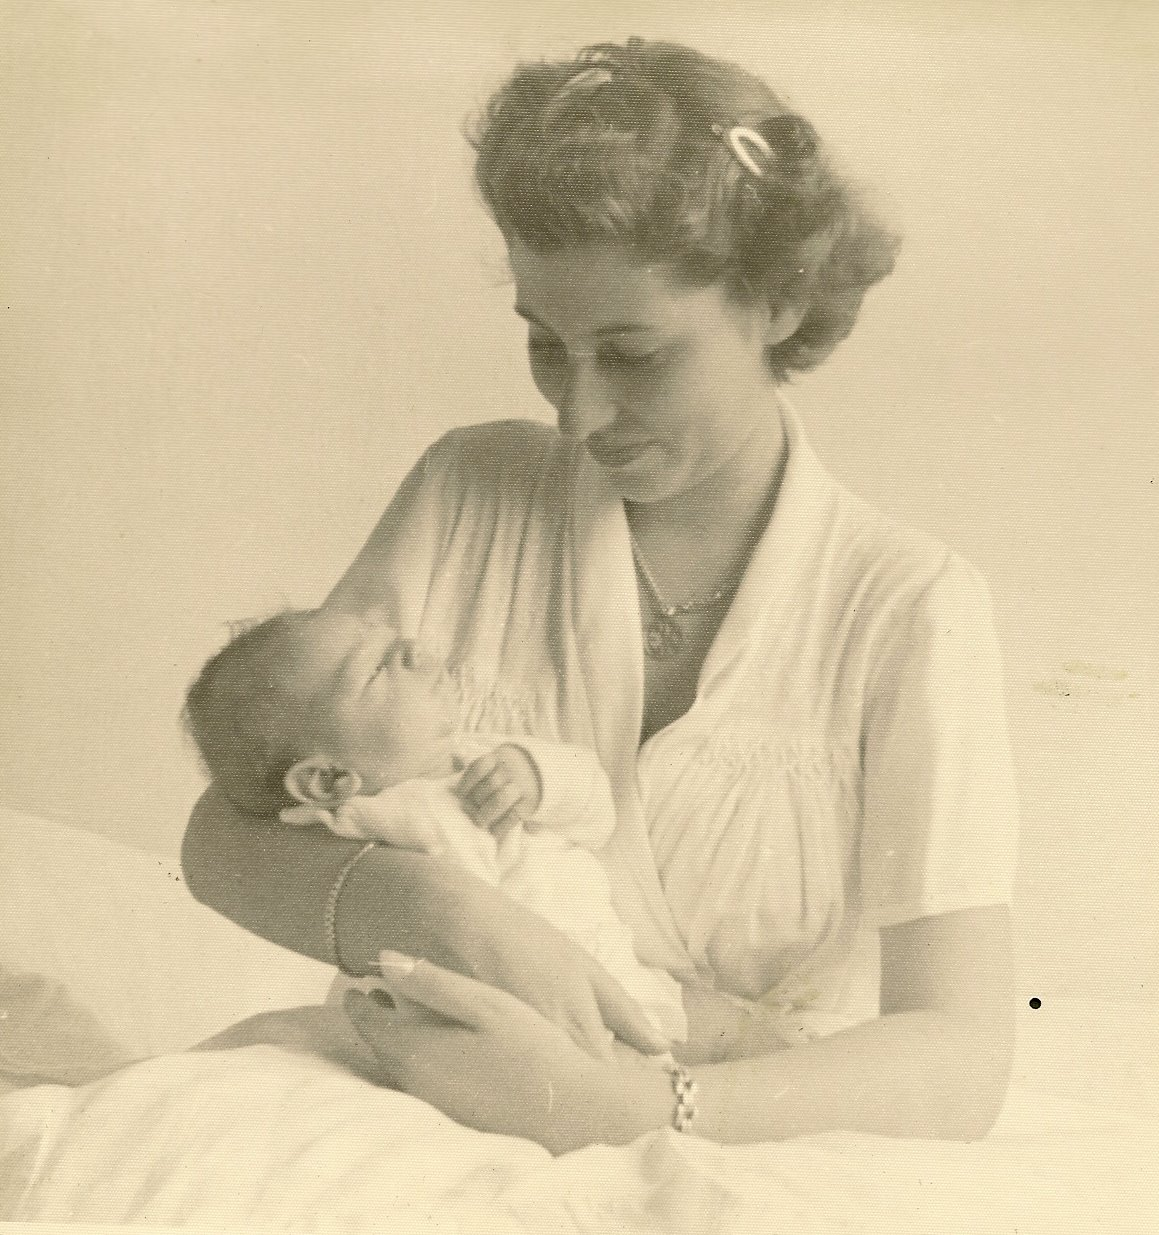 Edith Koppel (nee Wellisch) & son, Tom -- 1953, Guayaquil